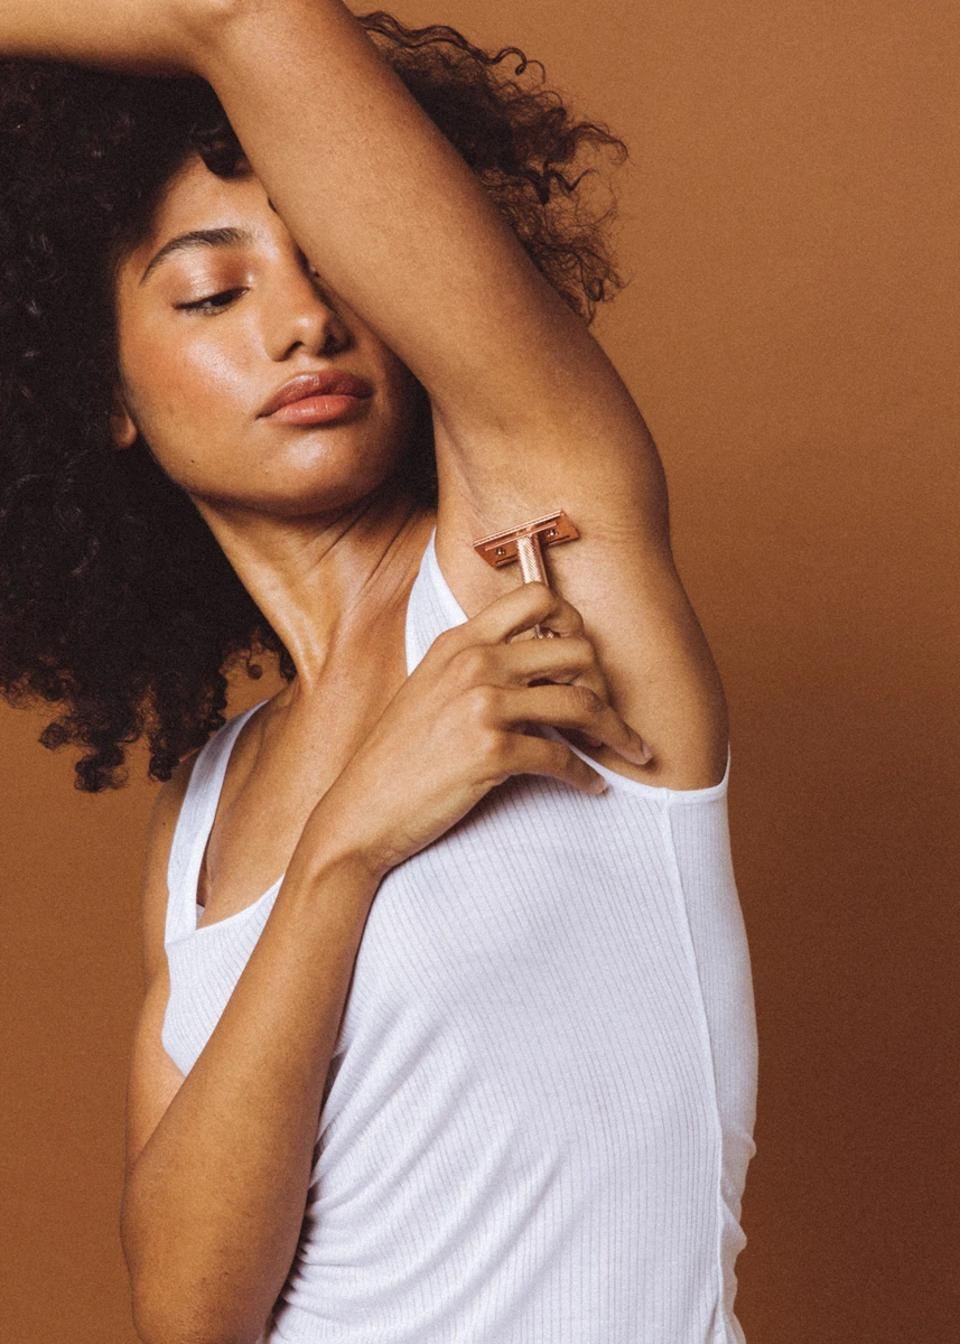 Model for Oui the People shaving armpit with metal razor.